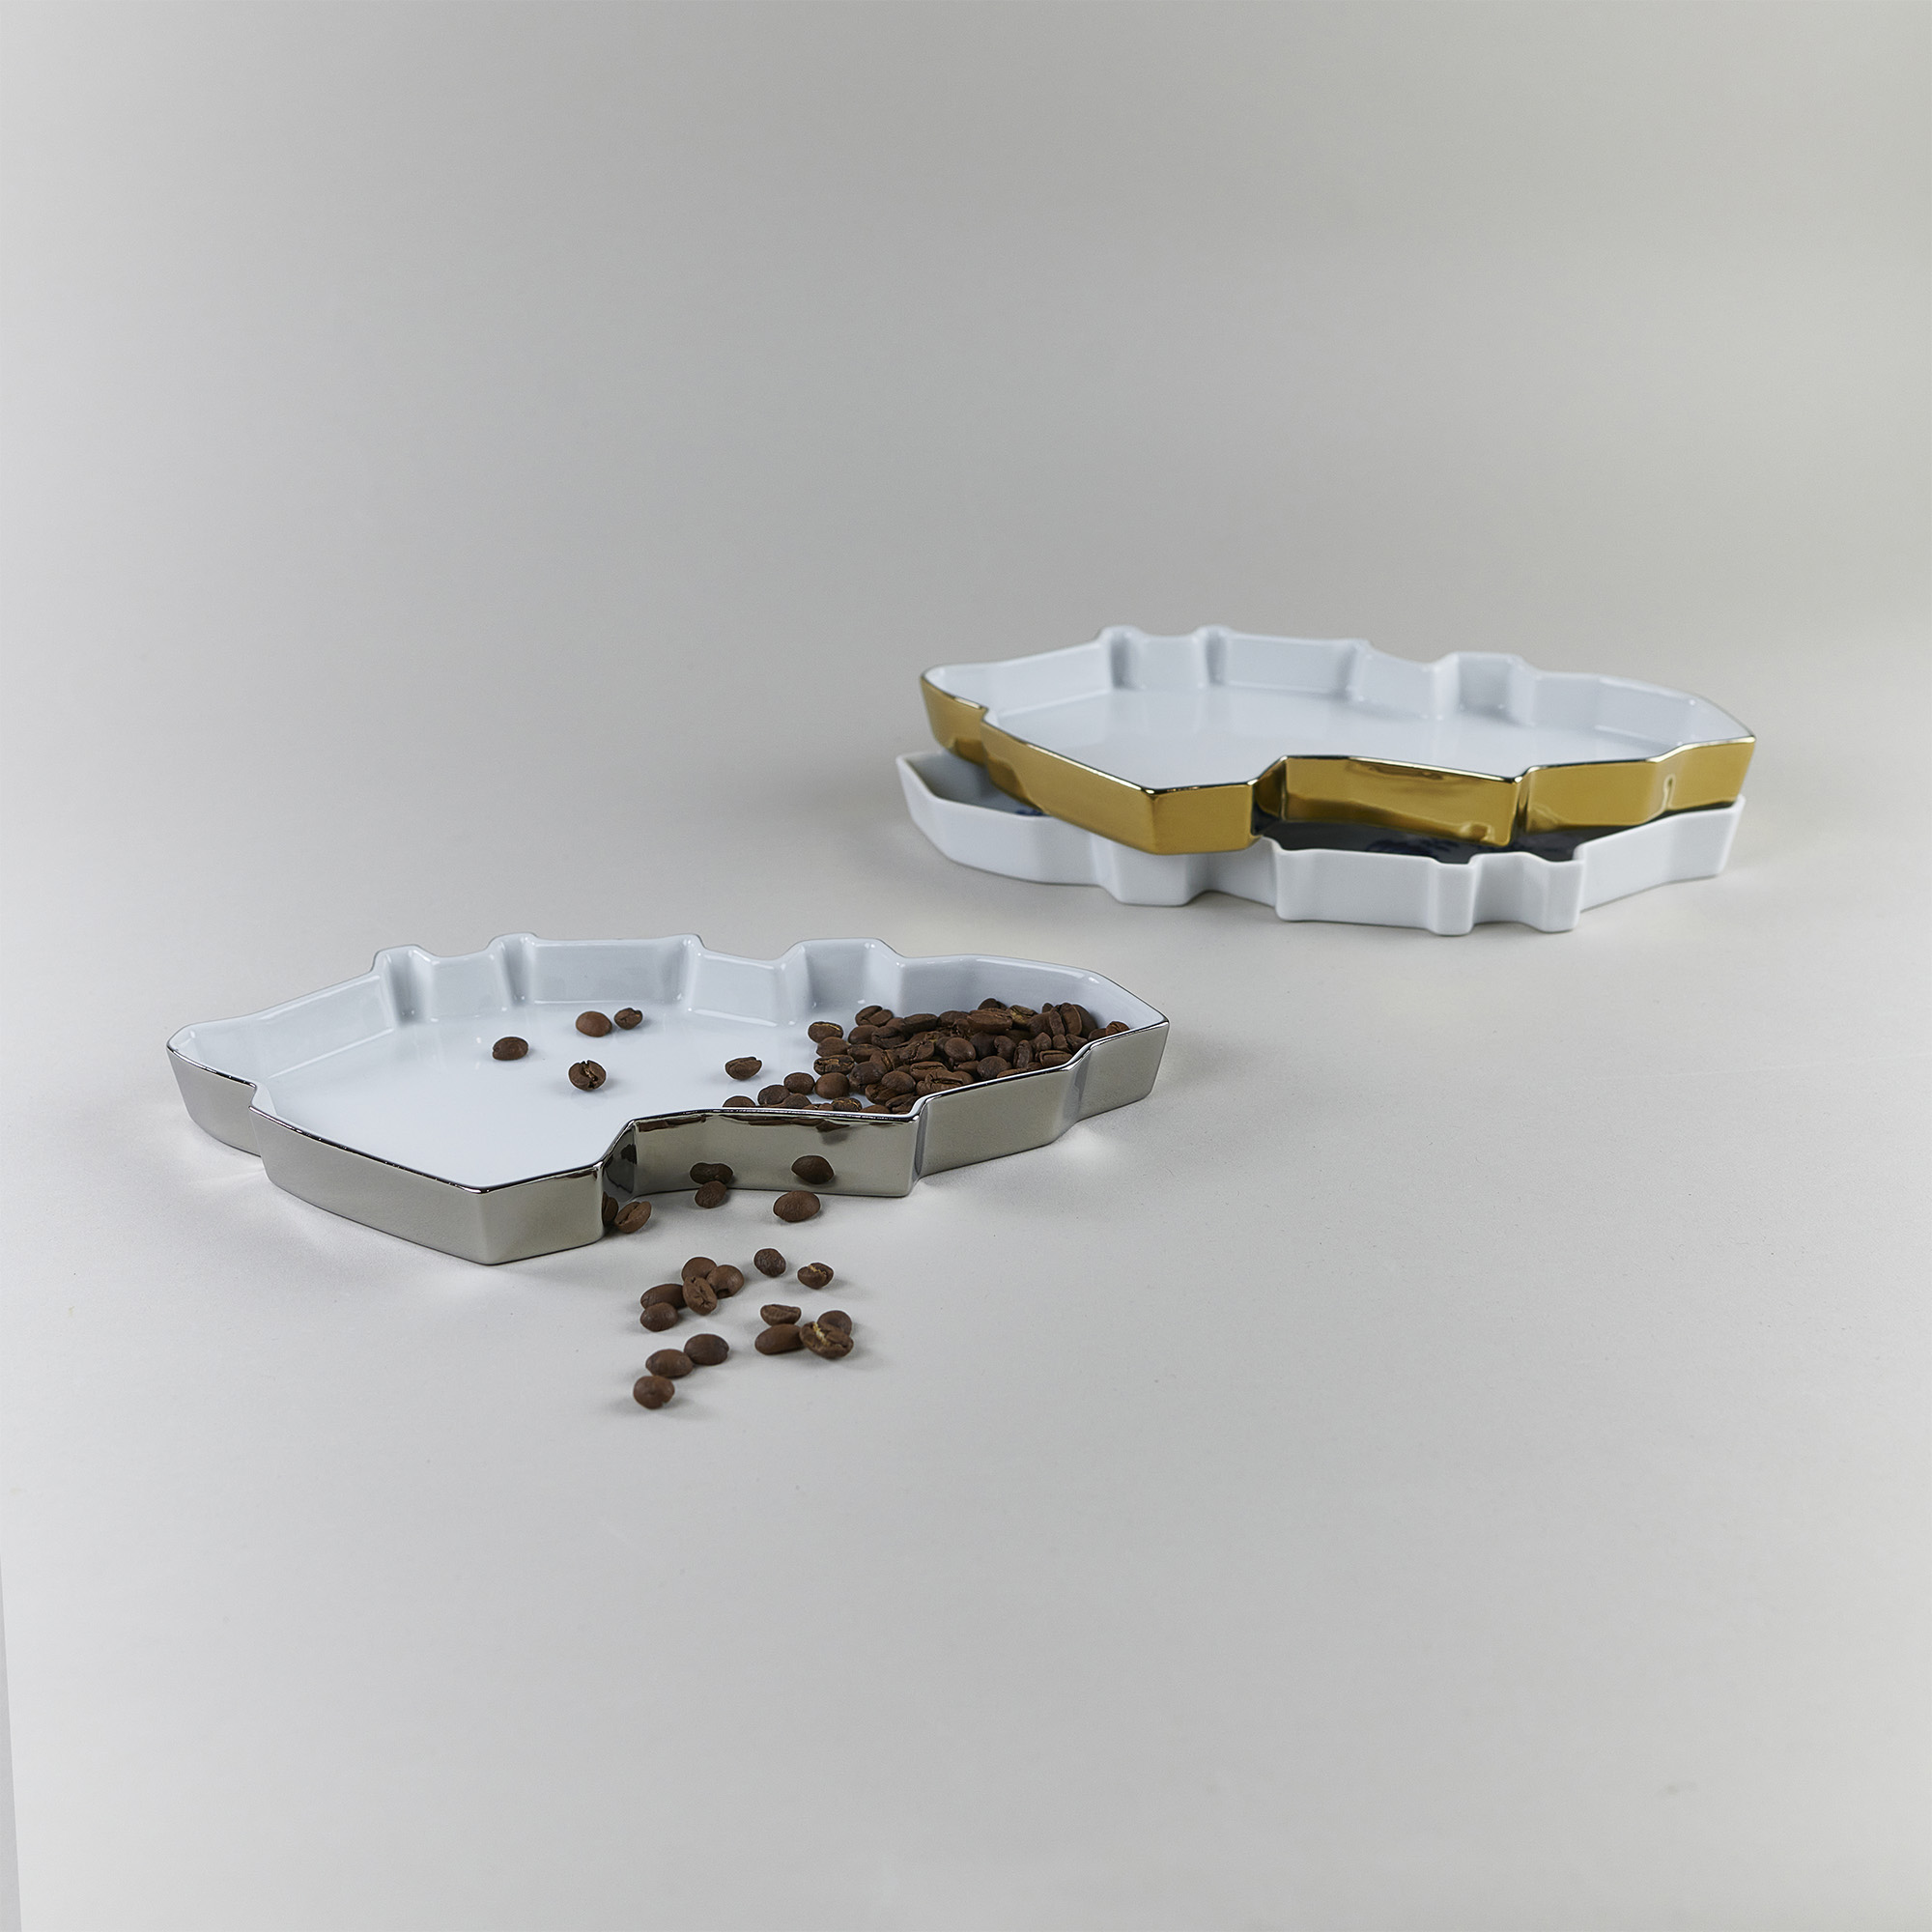 Silver, gold and white porcelain trays with grapes by Qubus design studio